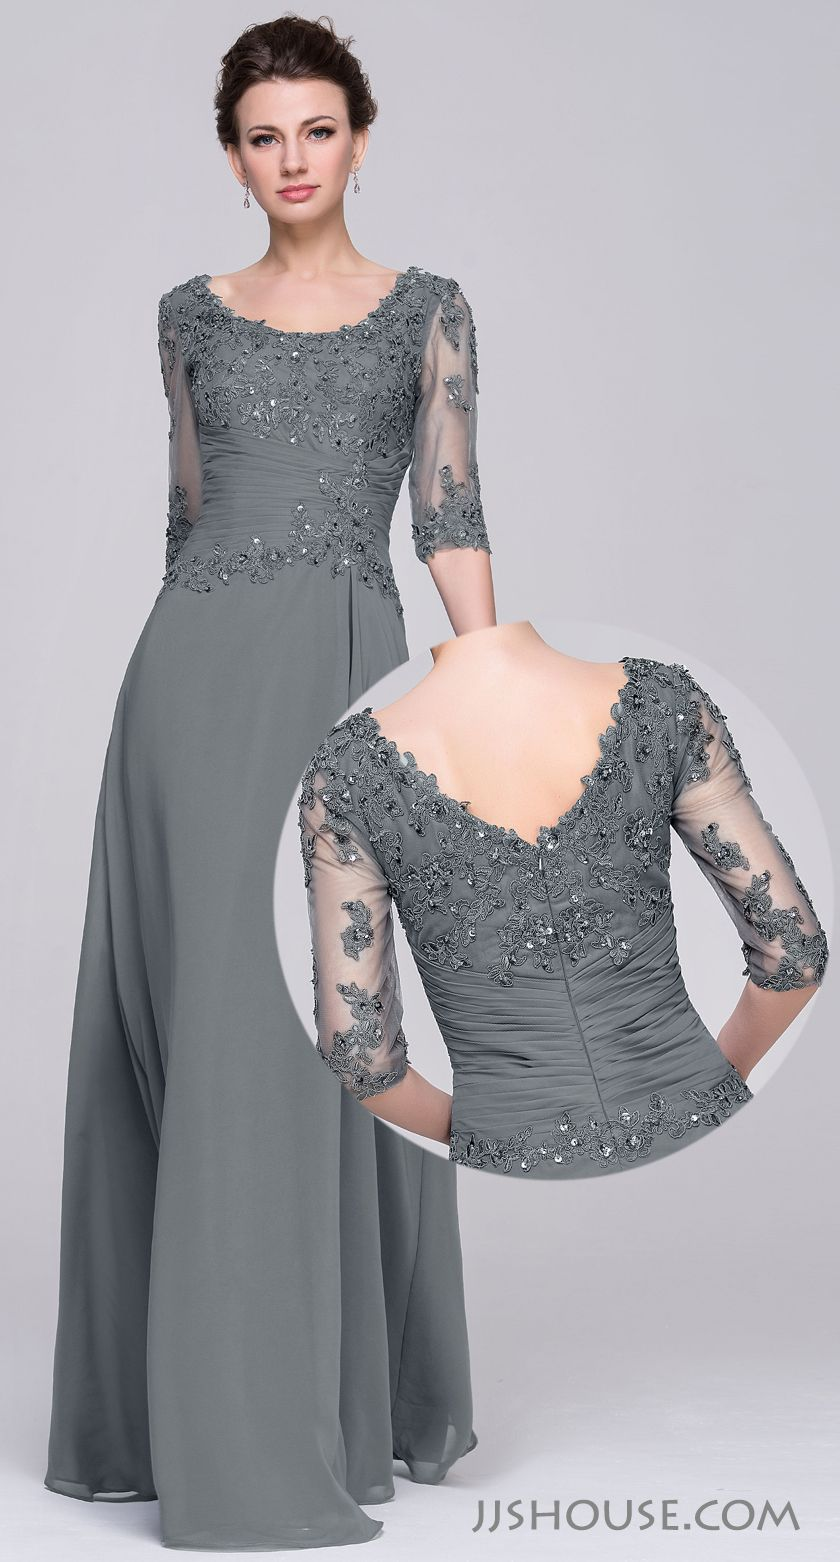 c8d62bf2bc5f Stylish and elegant. Love charcoal color. #jjshouse #motherdress #tulle # charcoal | mother of the bride in 2019 | Dresses, Bridesmaid dresses, ...